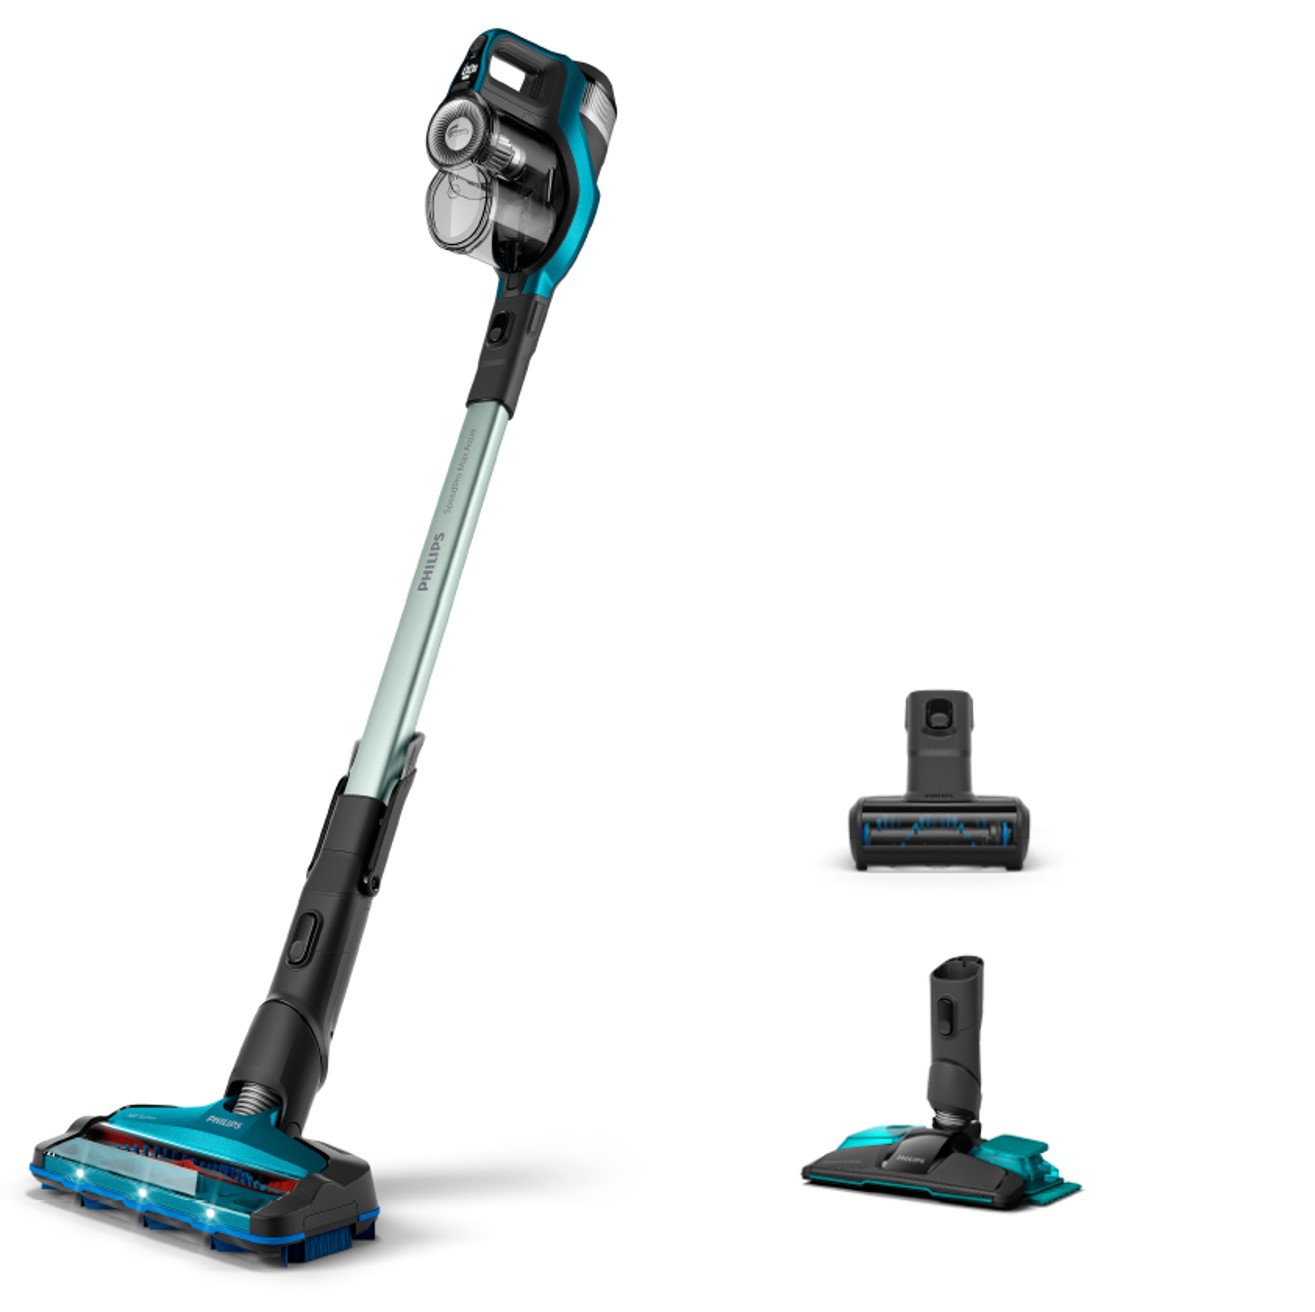 SpeedPro Max Aqua Cordless Handstick Vacuum Cleaner with mopping system FC6904